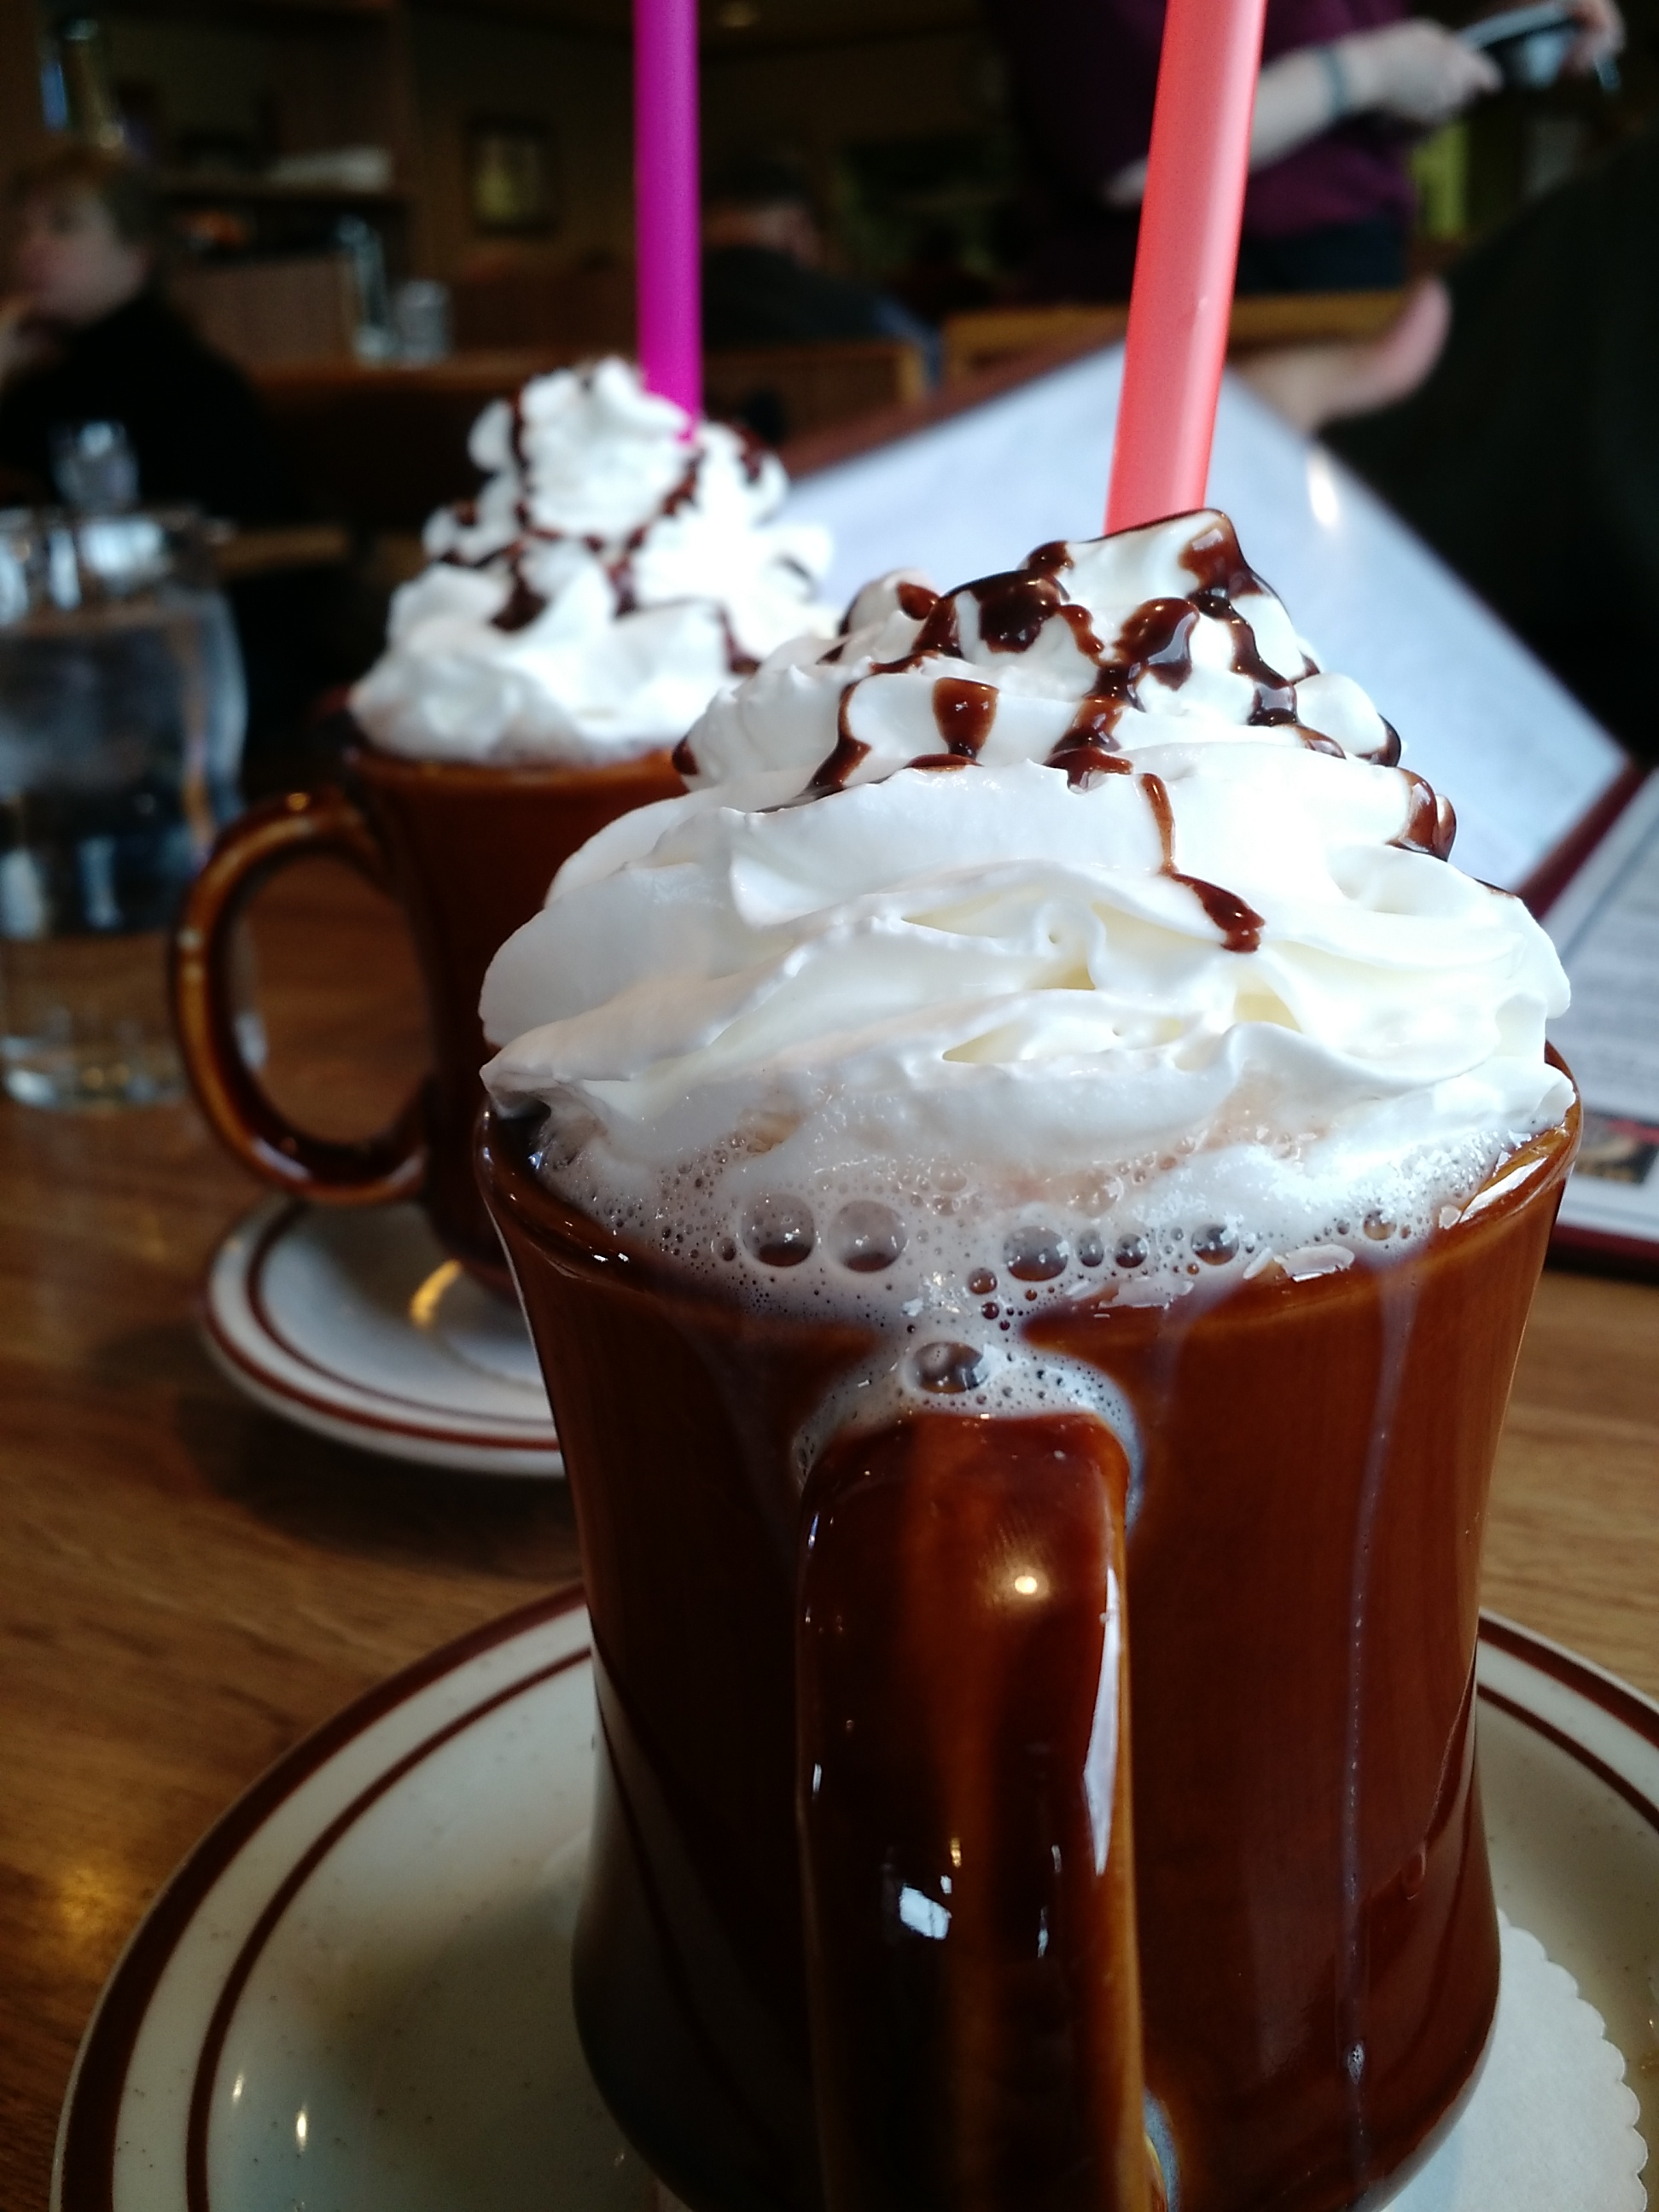 Breakfast isn't complete without some diner style hot chocolate.